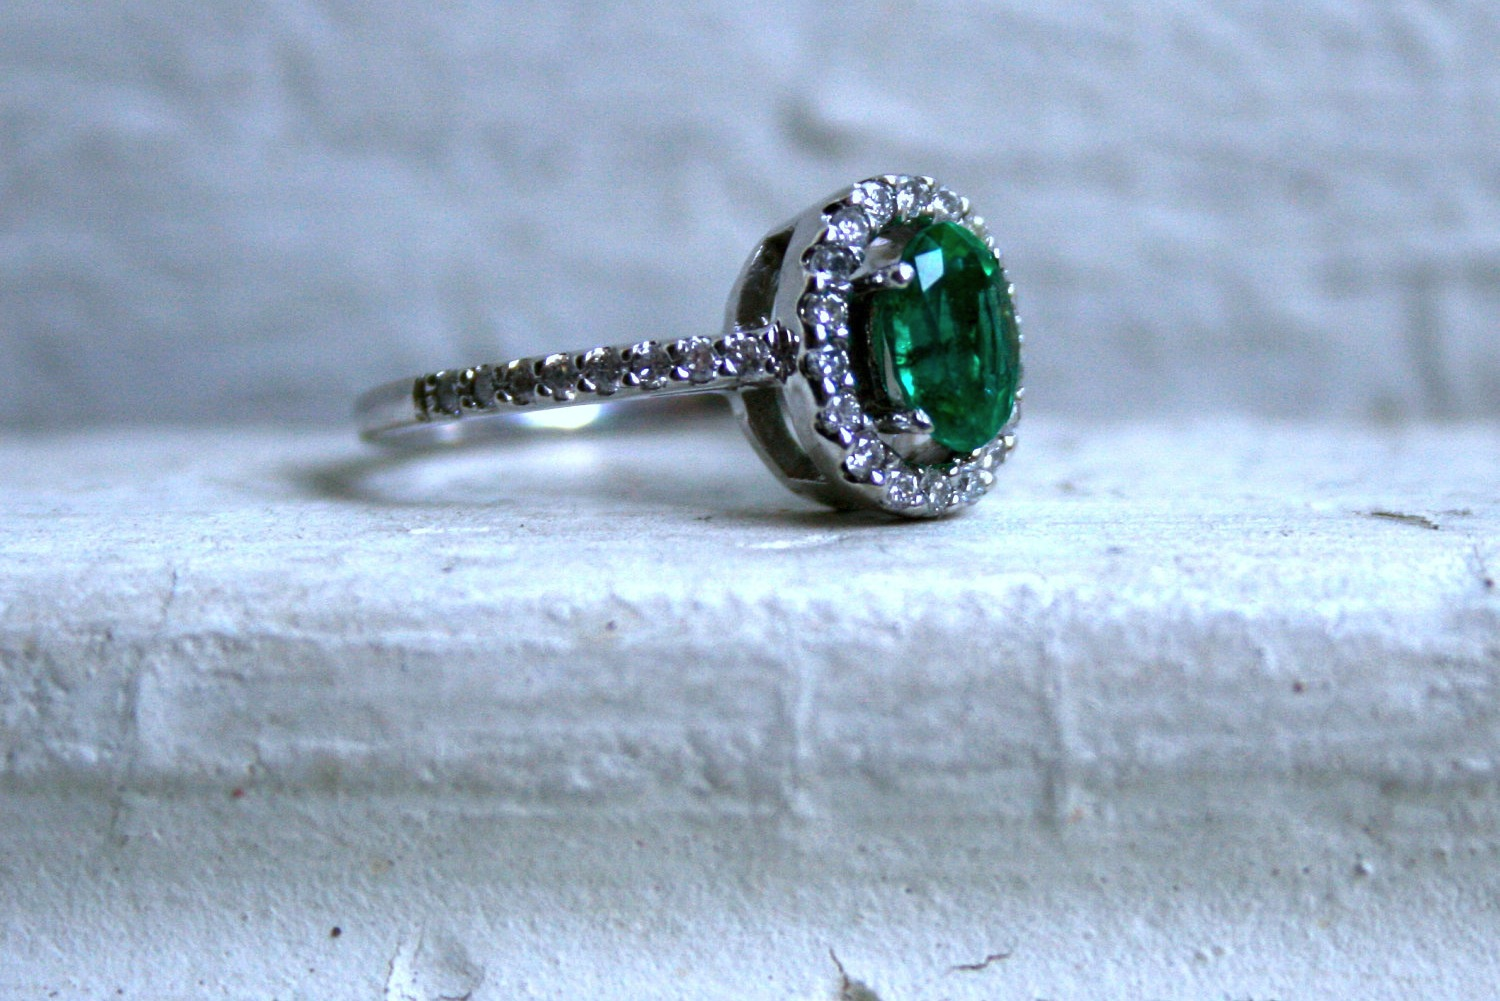 vintage engagement ring with emerald center stone onewedcom